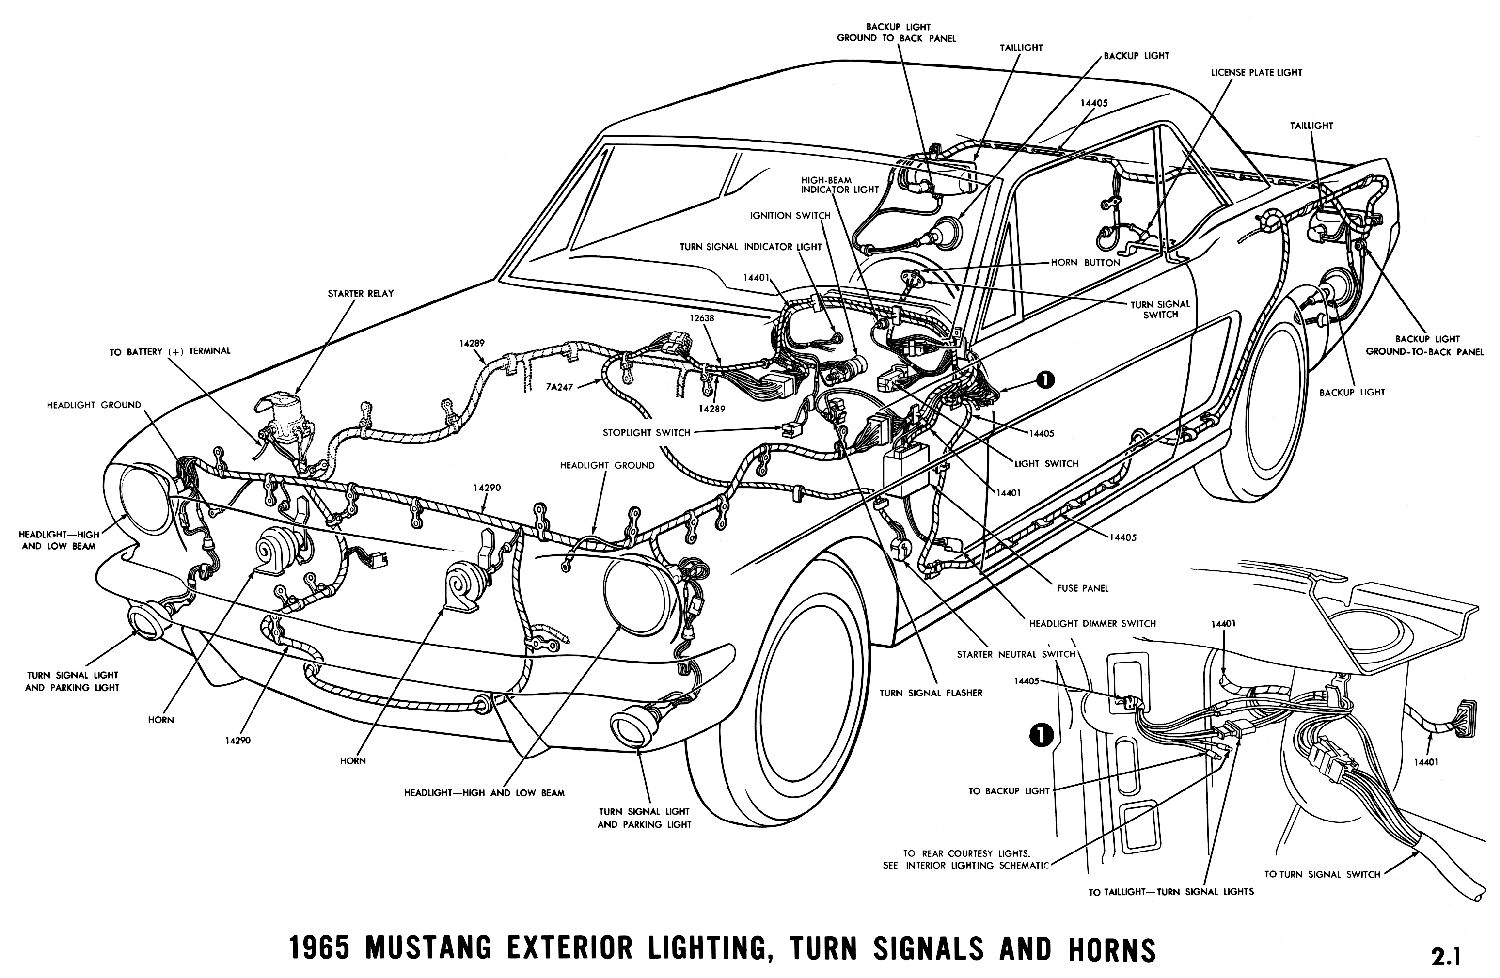 1965d 1965 mustang wiring diagrams average joe restoration wiring diagram at gsmportal.co